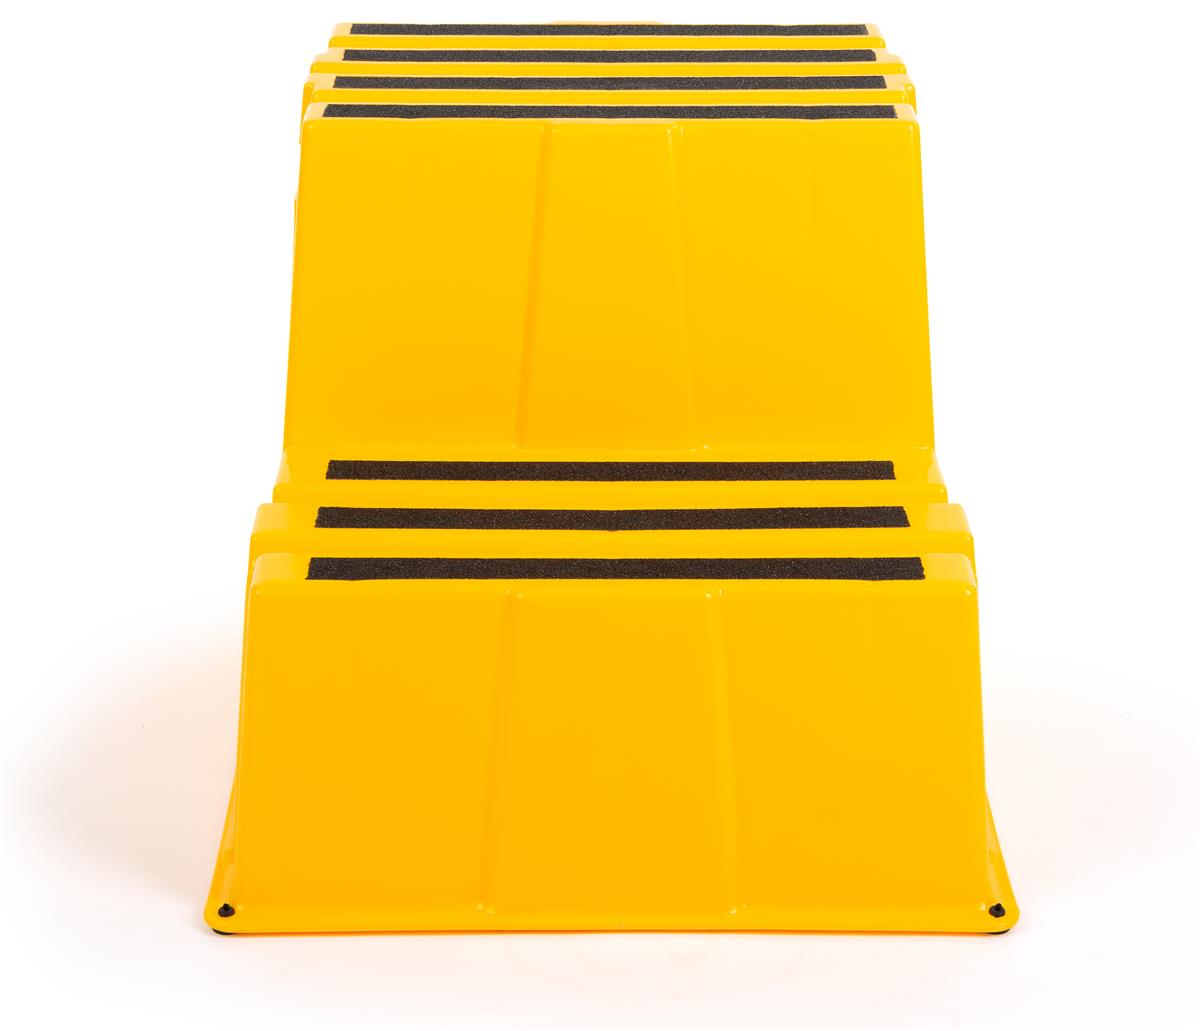 Stupendous Industrial Step Stand 20 Tall 2 Tier Yellow Plastic Evergreenethics Interior Chair Design Evergreenethicsorg